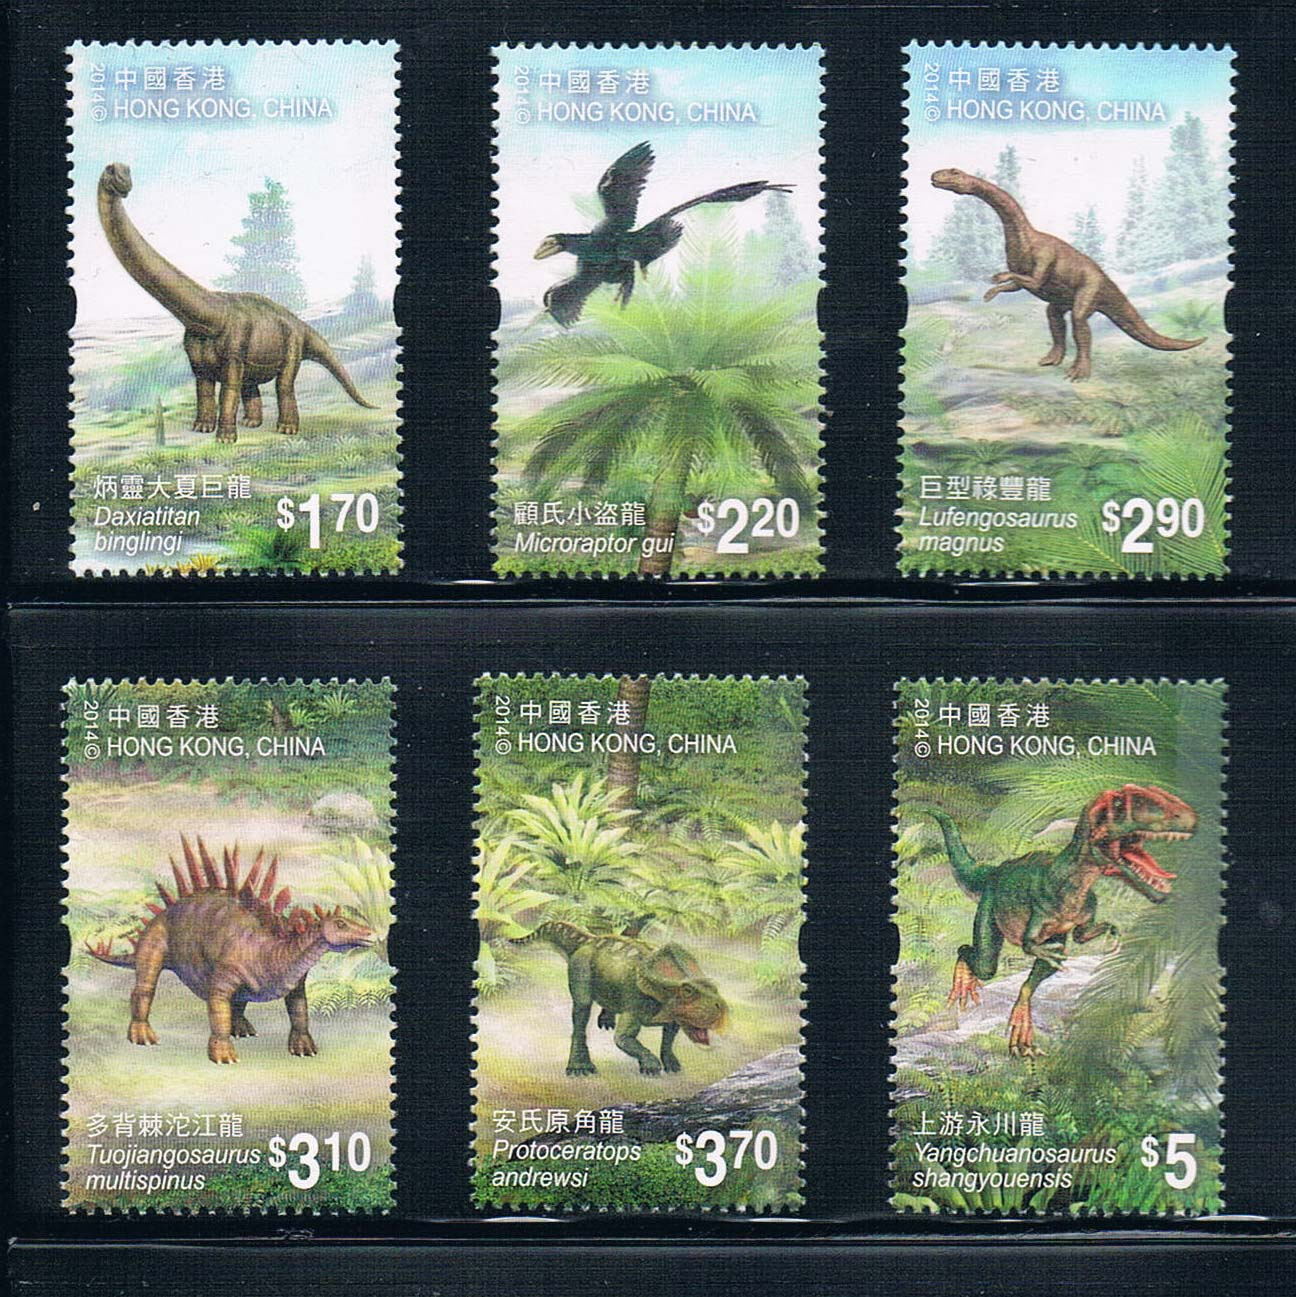 HK0091 Hongkong 2014 Chinese dinosaur luminous 6 new stamps туфли d fuse 410077017 2014 7017 0017 0040 0091